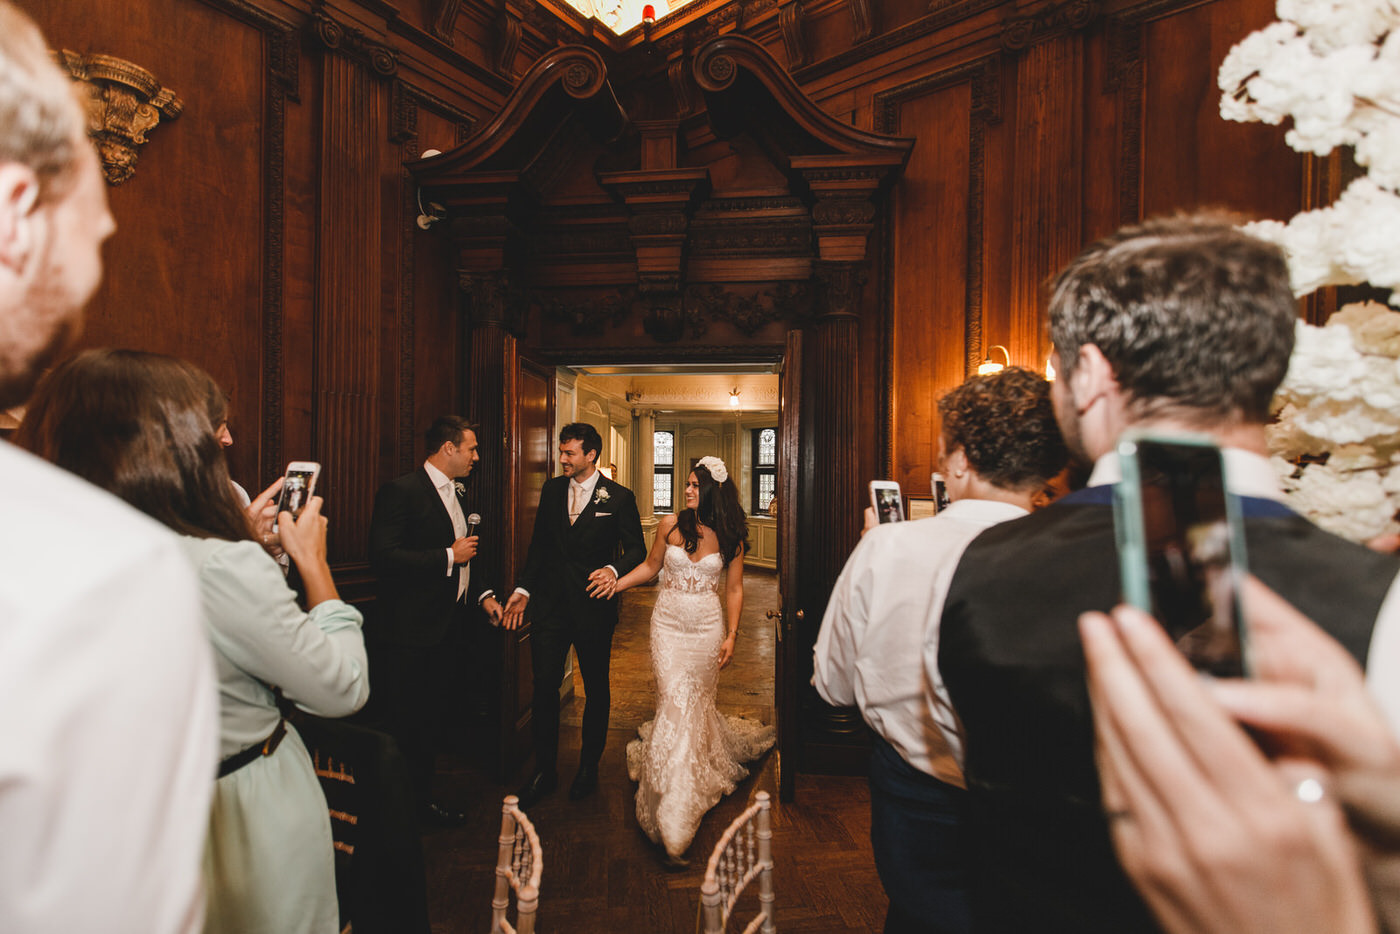 the bride and groom make their entrance into the wedding reception